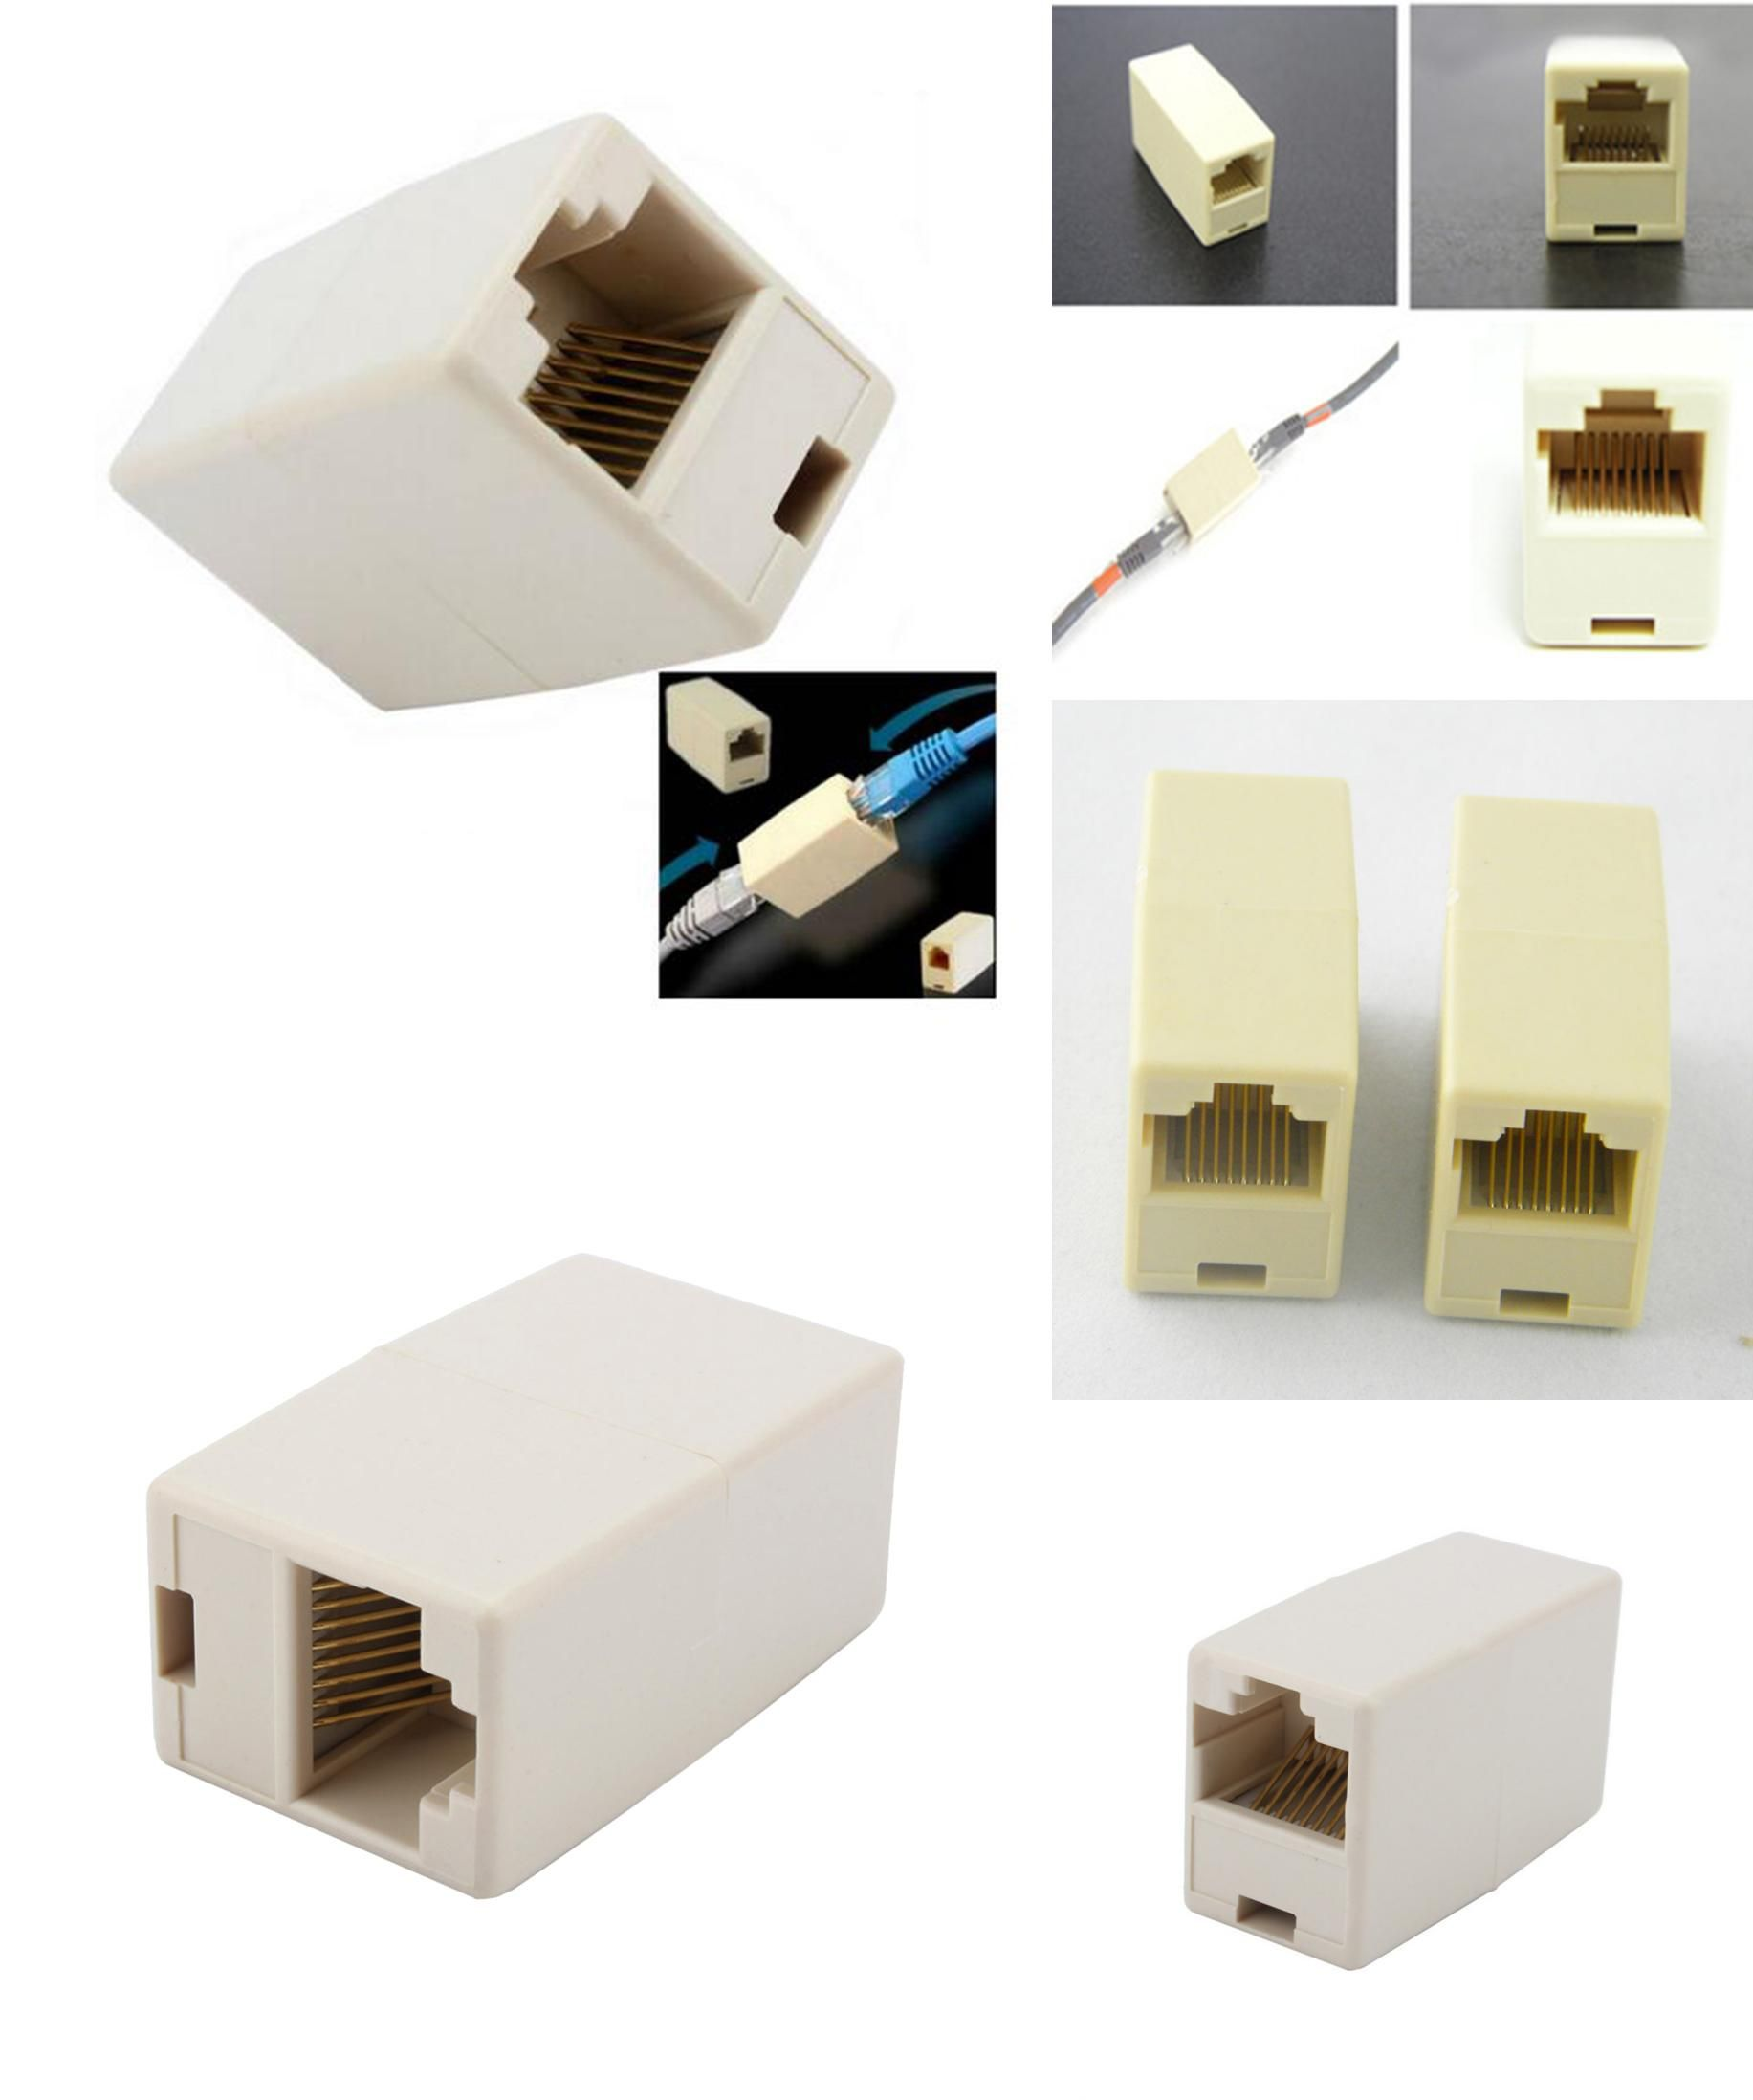 Visit To Buy 2016 Cable Joiner Rj45 Adapter Network Ethernet Lan Coupler Connector Extender Plug Advertisement Usb Flash Drive Cheap Computers Rj45